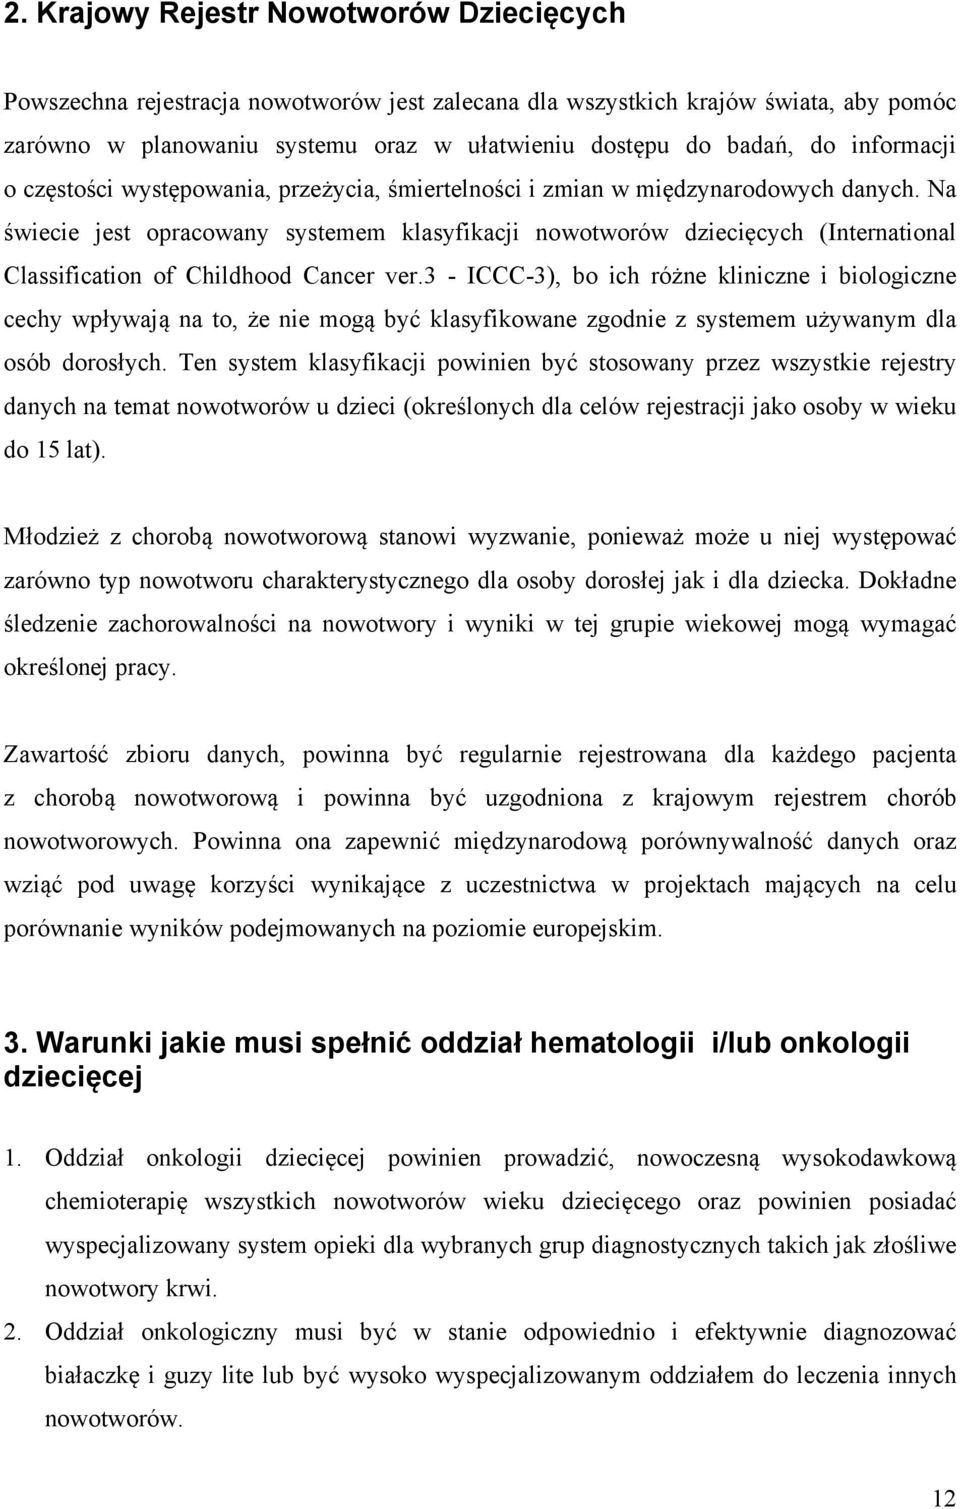 Na świecie jest opracowany systemem klasyfikacji nowotworów dziecięcych (International Classification of Childhood Cancer ver.